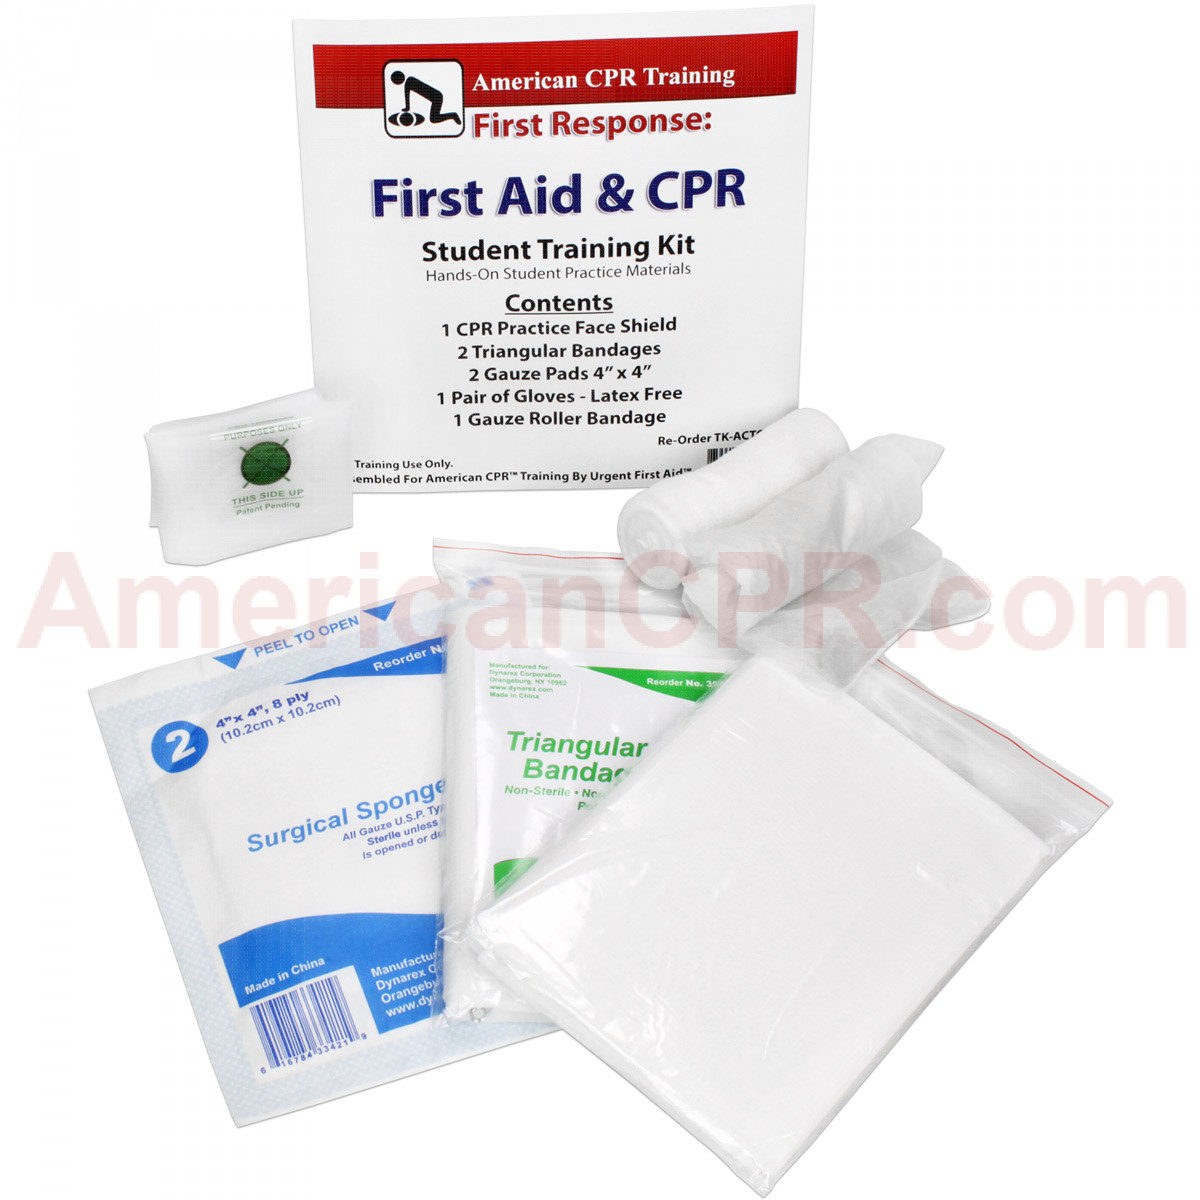 7ae1d8b7c7 American CPR Training™ | CPR & First Aid Student Training Kit, 8 ...